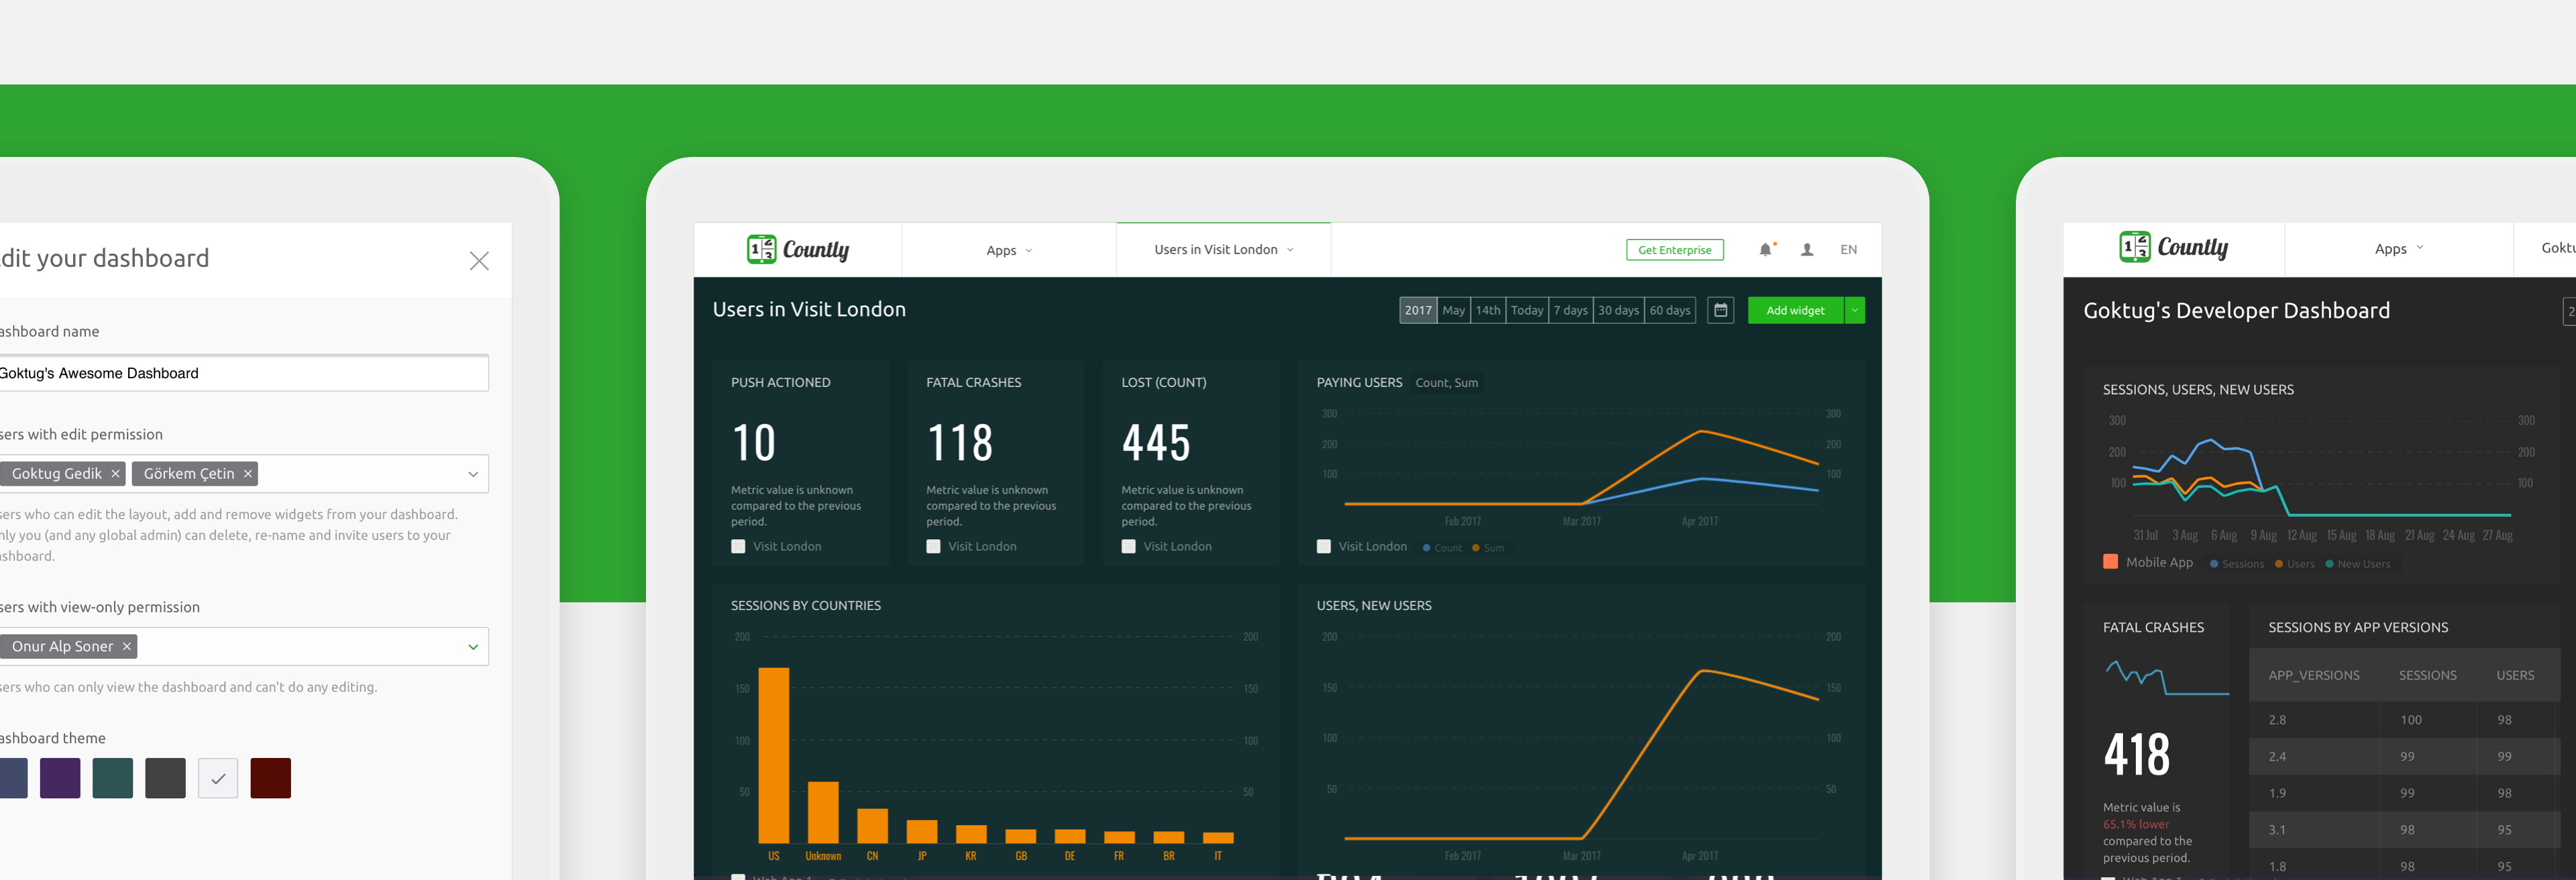 6 questions to ask yourself before creating a dashboard